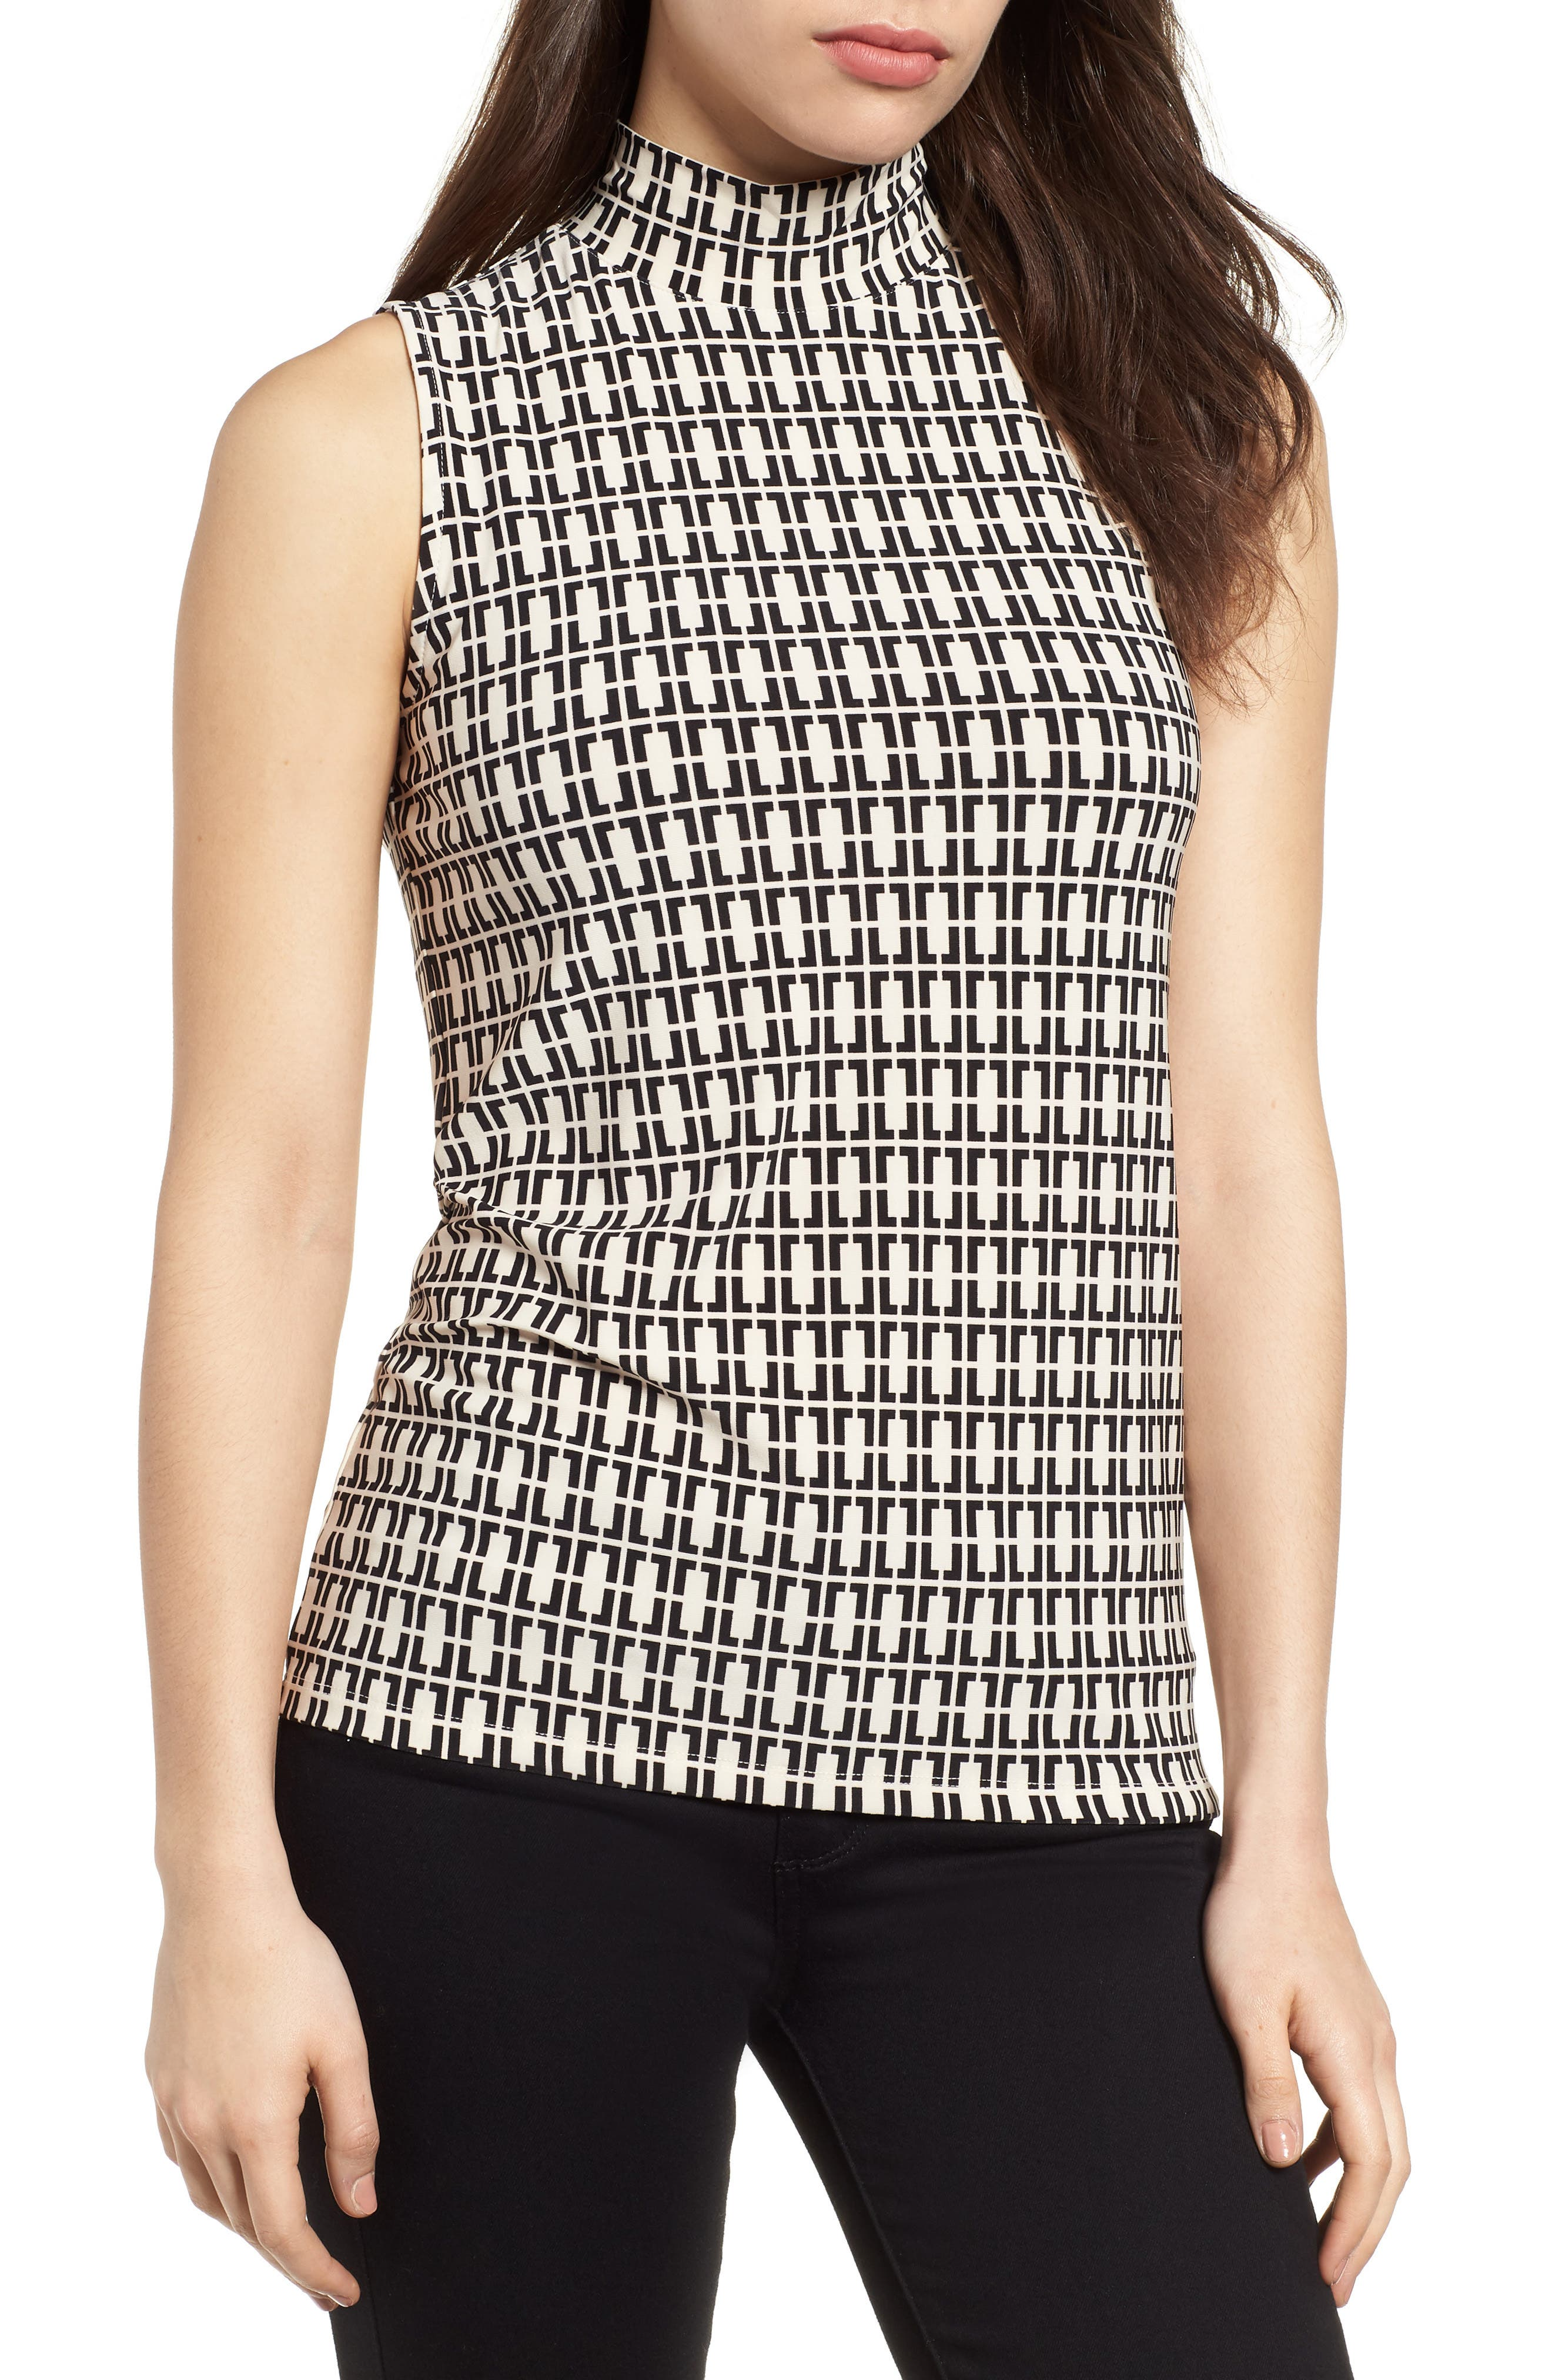 Printed Sleeveless Mock Neck Top,                             Main thumbnail 1, color,                             Parchment/ Black